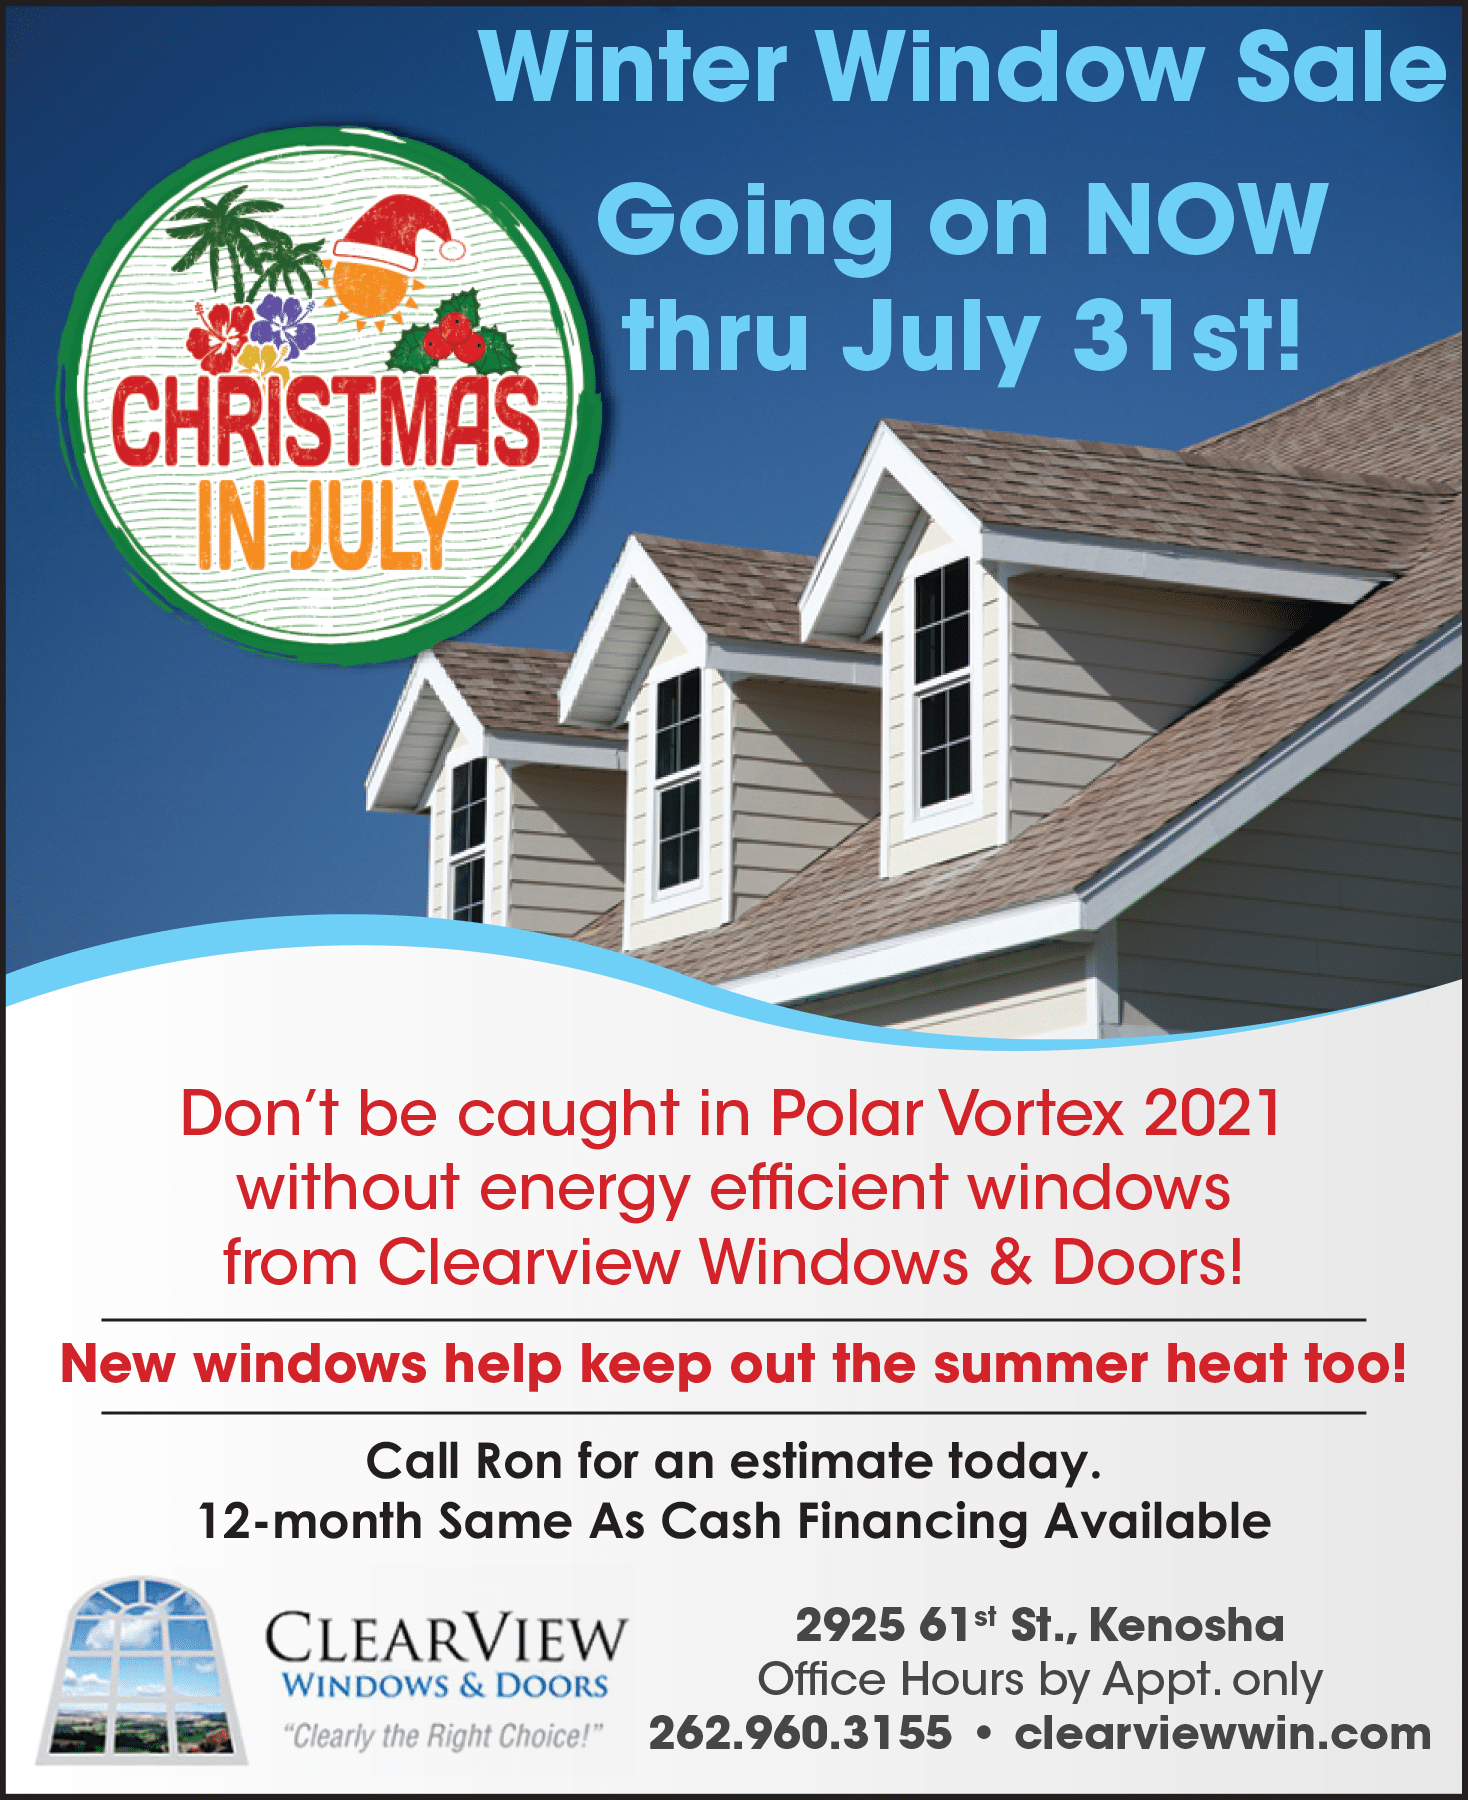 christmas in july, clearview windows and doors, window sale